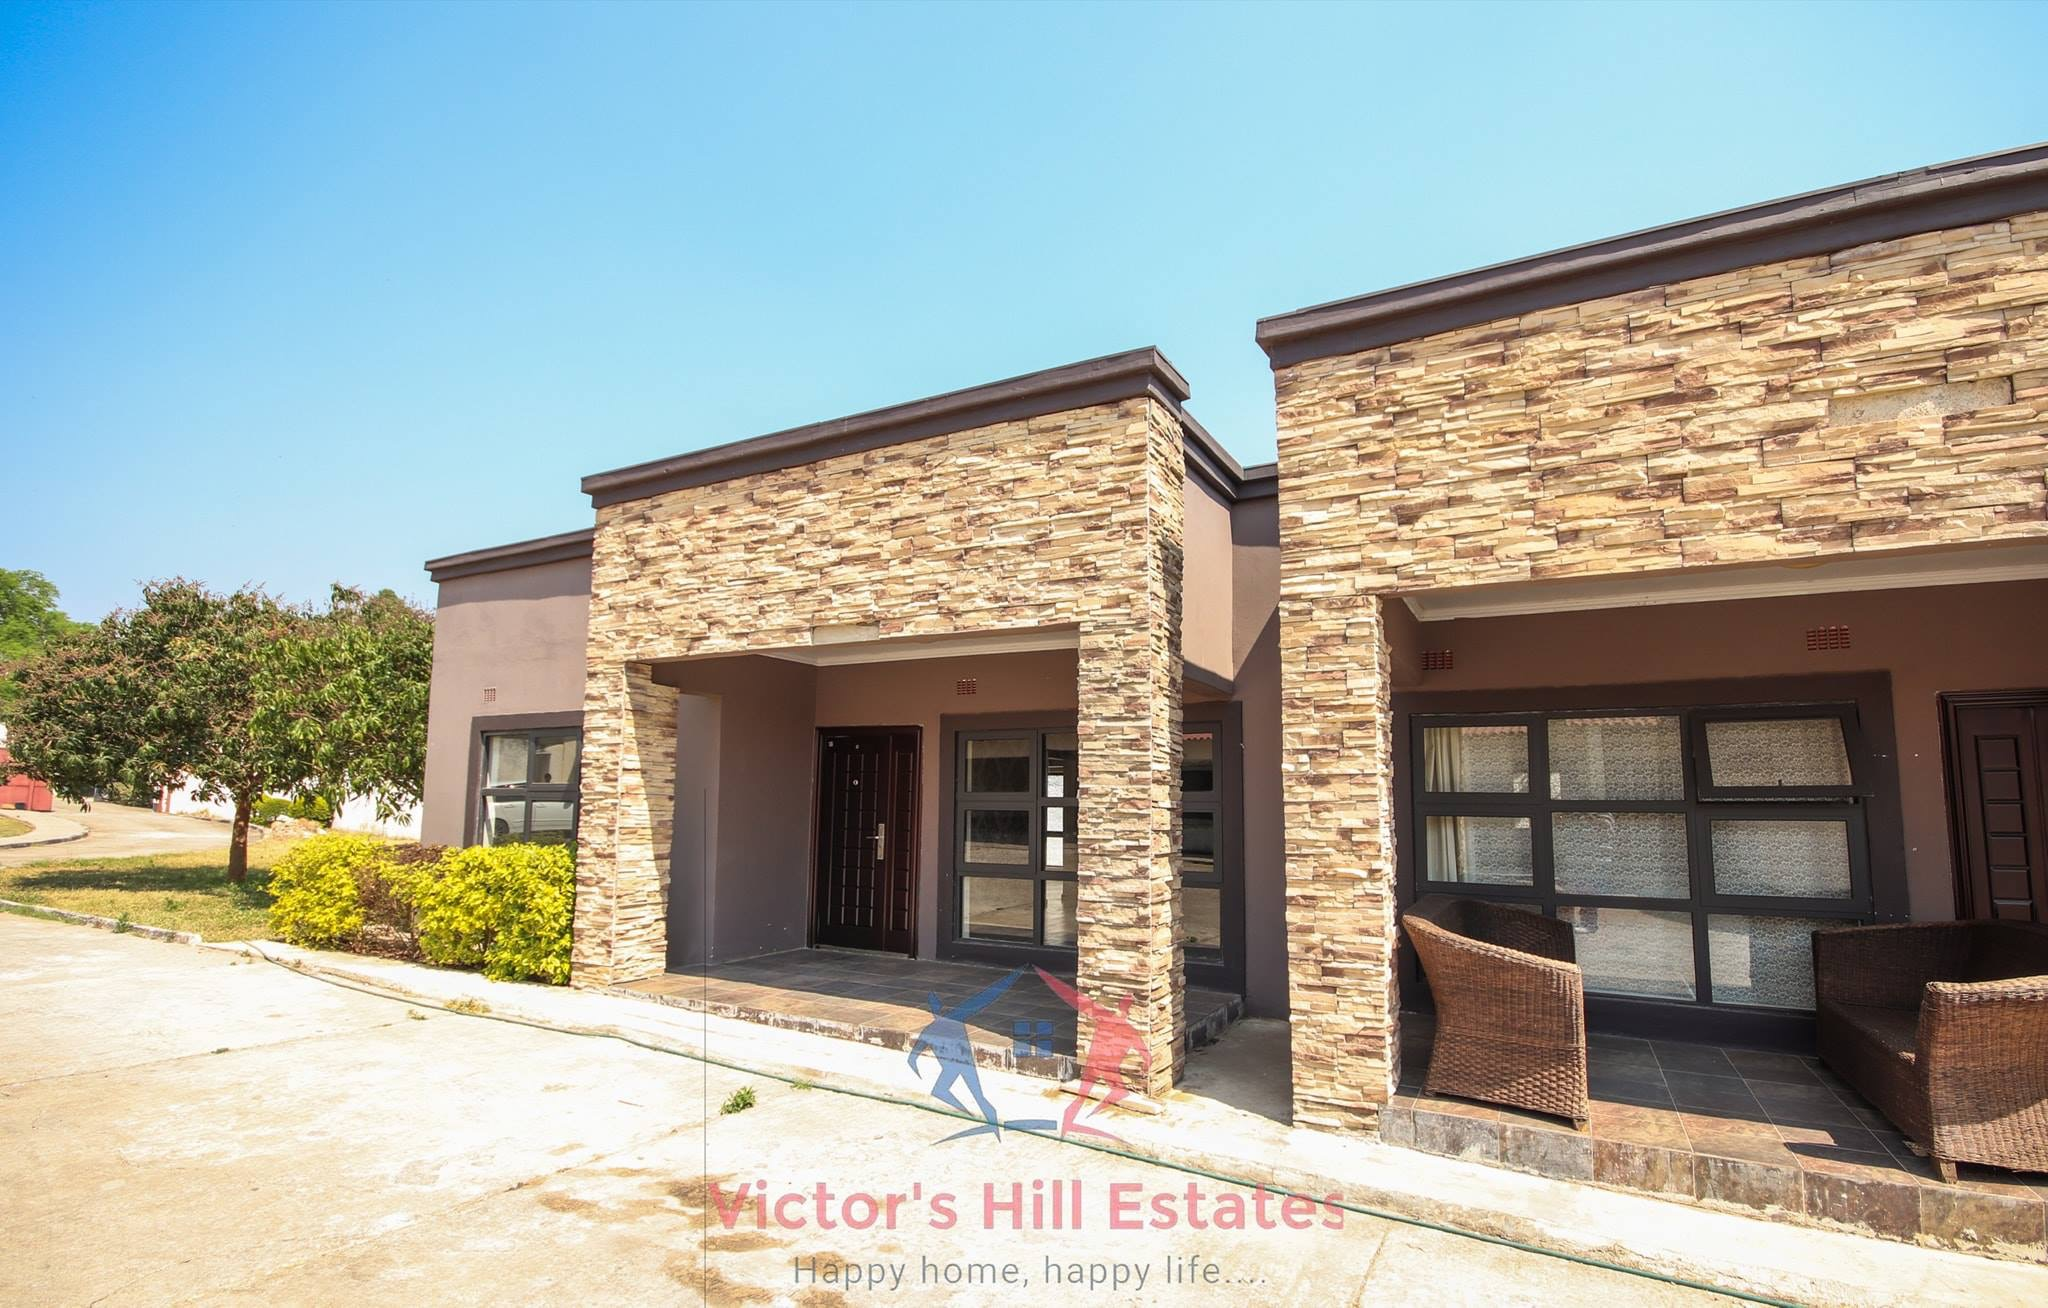 2 Bedroom Flat For Rent In Ibex Hill Lusaka |BE FORWARD on 2 flat bedroom house plans, design home small house plans, tactical house plans, floor house plans, 3 flat bedroom house plans, flat front house plans, hvac house plans, 4 bedroom flat house plans, flat top house plans, sheet metal house plans, contemporary house plans, structural insulated panel house plans, skylight house plans, ultra modern house plans, semi-detached flats house plans, construction house plans, veranda house plans, french mansard house plans, roof building plans,